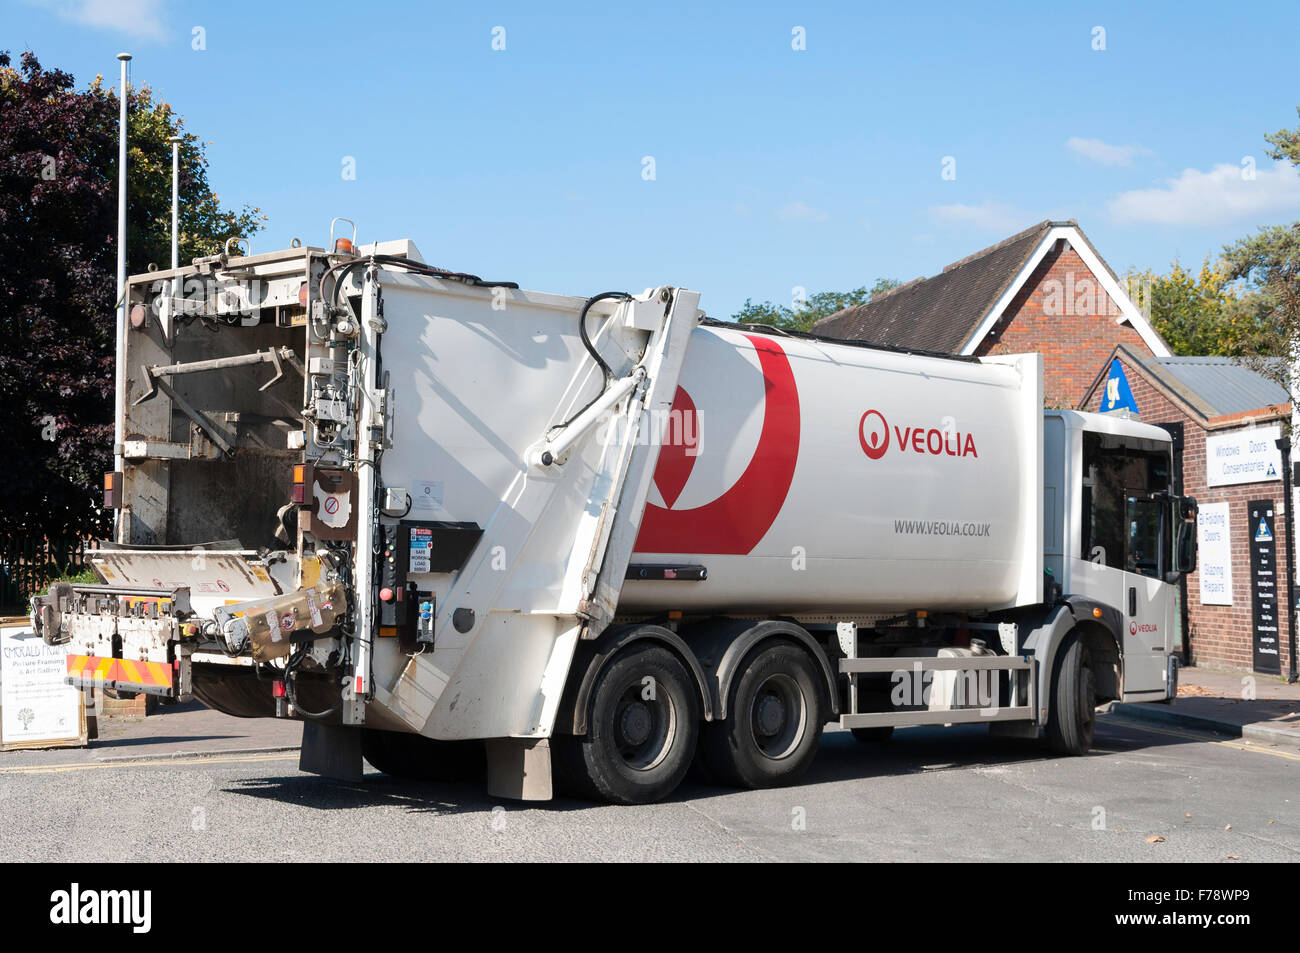 Veolia rubbish truck, Church Lane, Chalfont St Peter, Buckinghamshire, England, United Kingdom - Stock Image